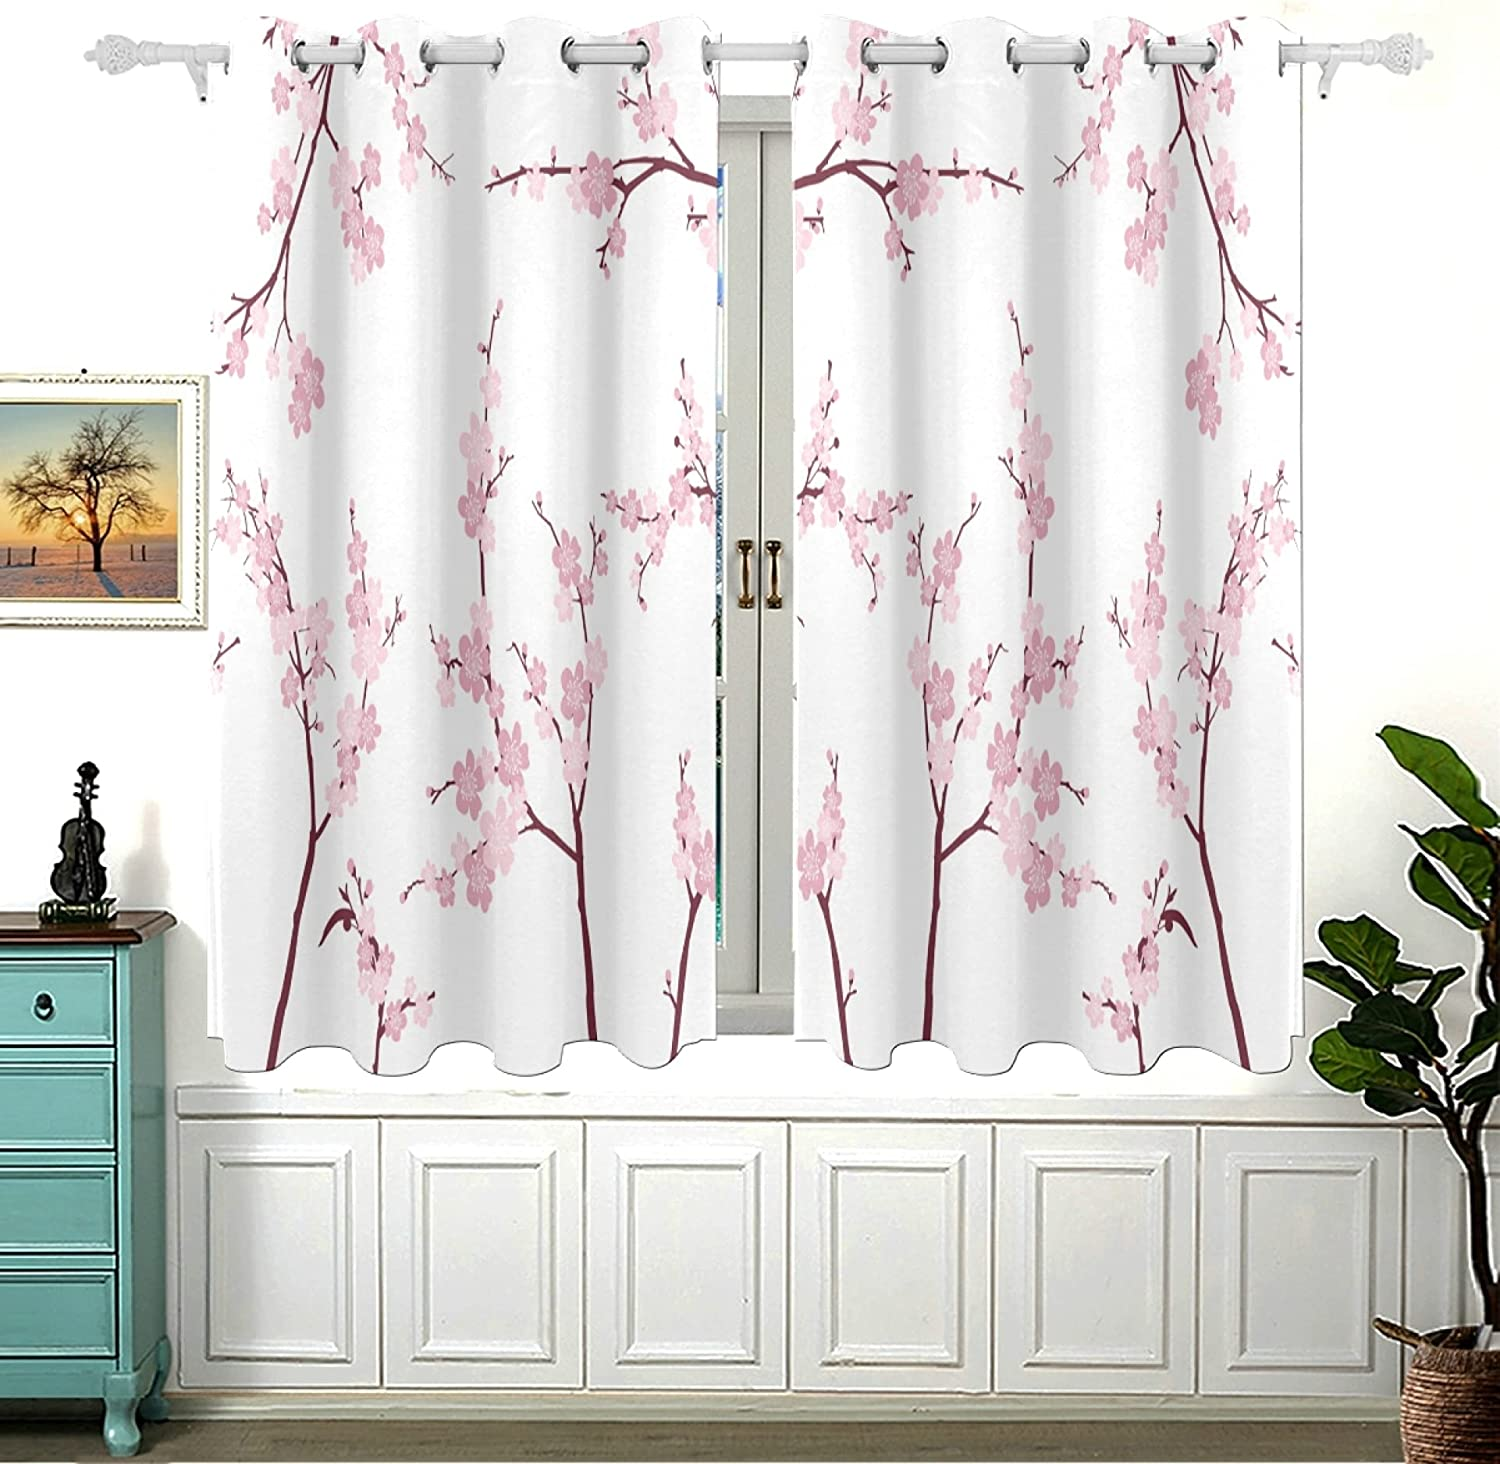 Retro Japanese Pink Cherry National products Blossom Bedroom Darkening for Ou Dealing full price reduction Room